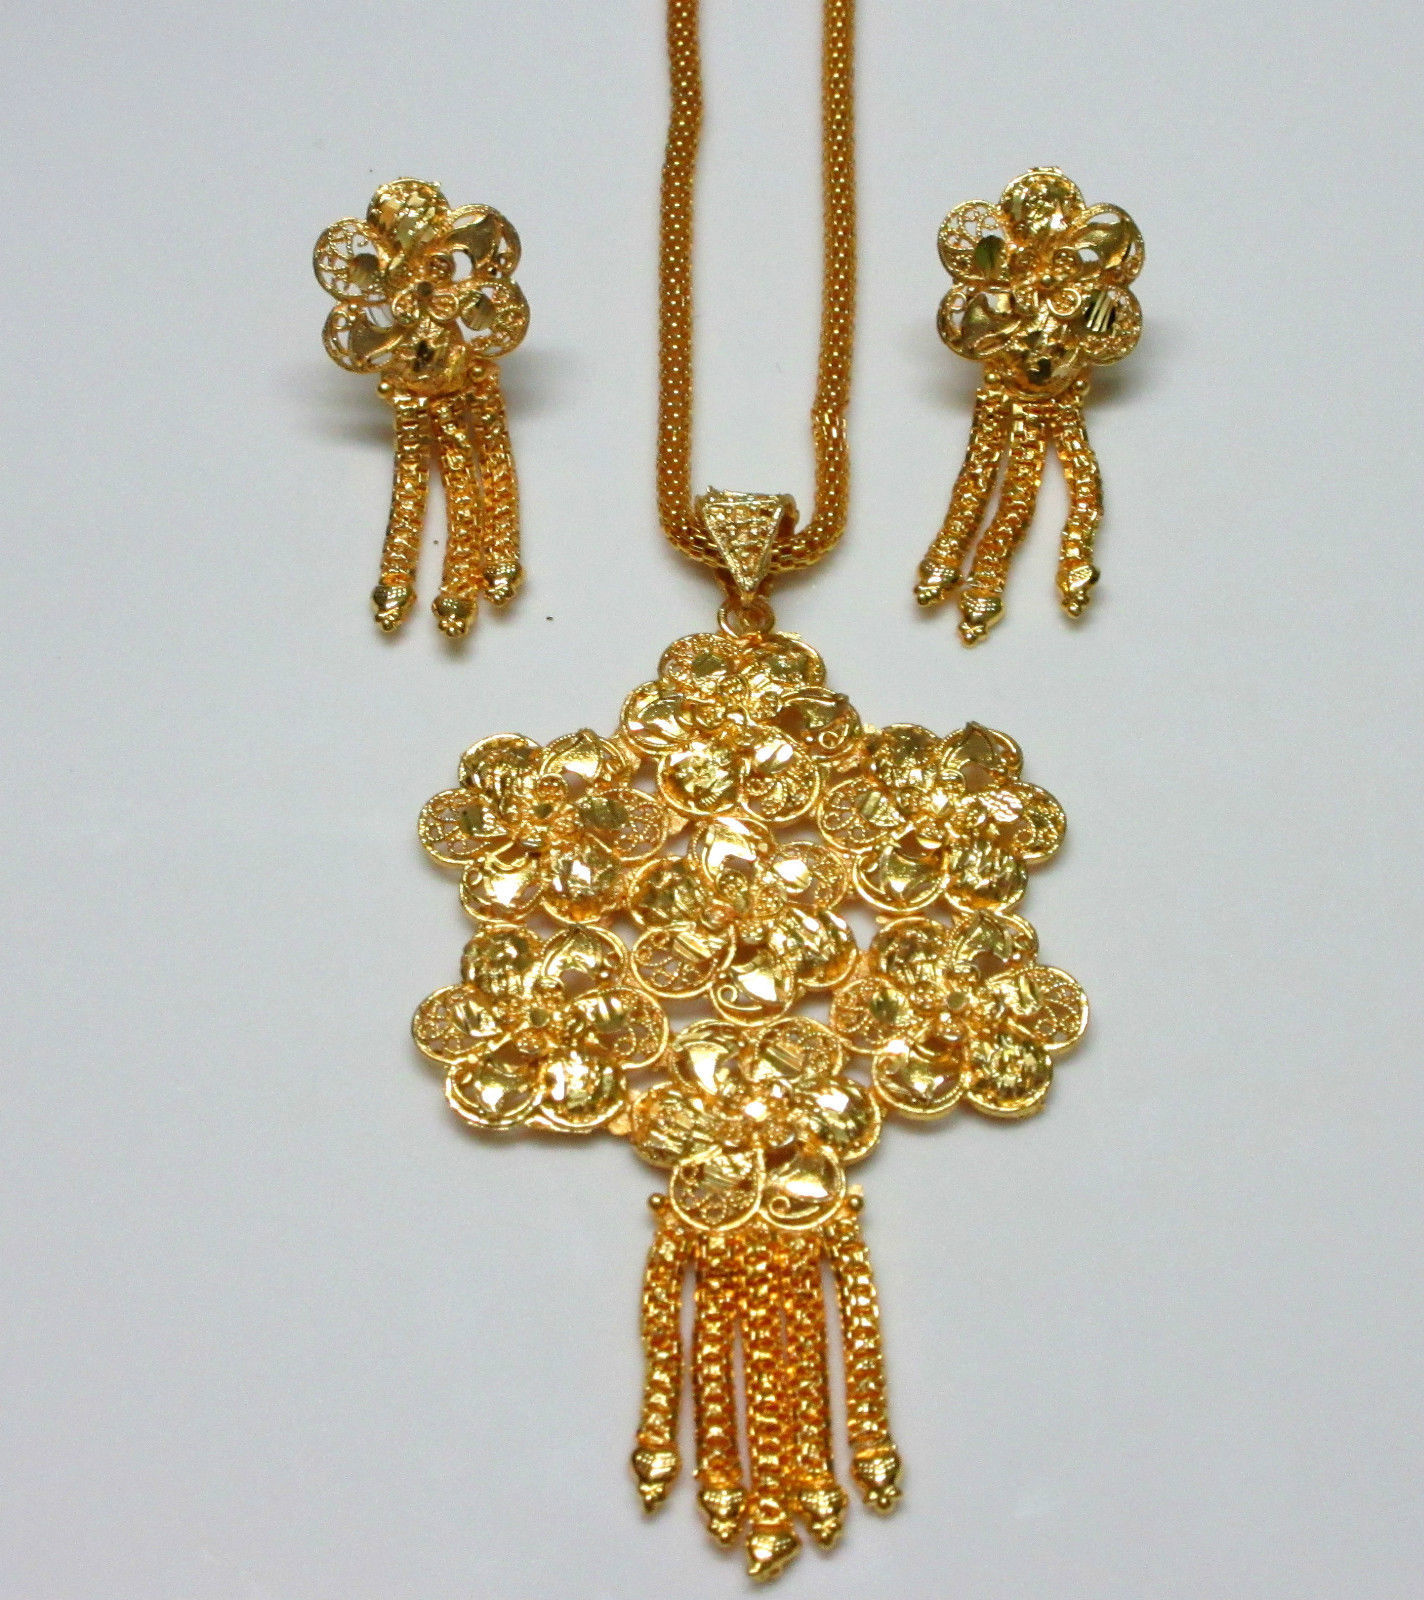 Indian Traditional Gold Plated Flower Style Pendant Chain Earrings Jewelry Sets